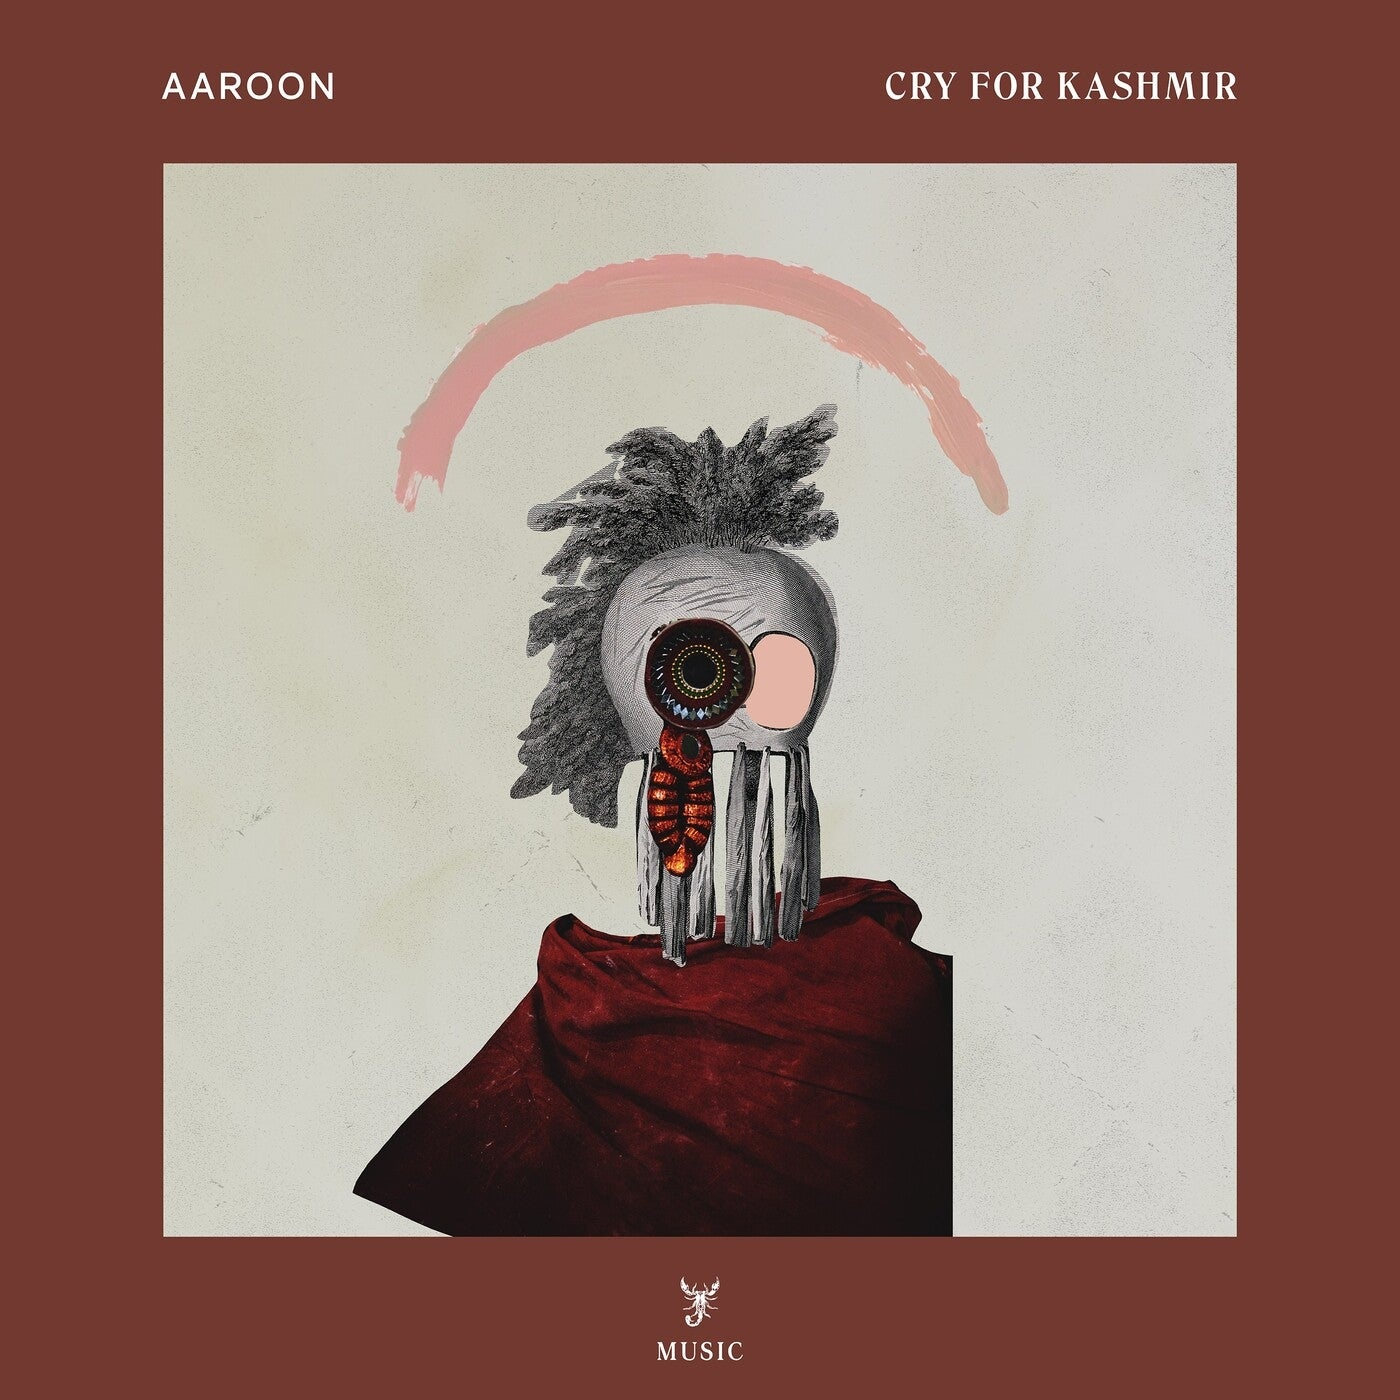 Cover - Aaroon - Cry for Kashmir (Original Mix)